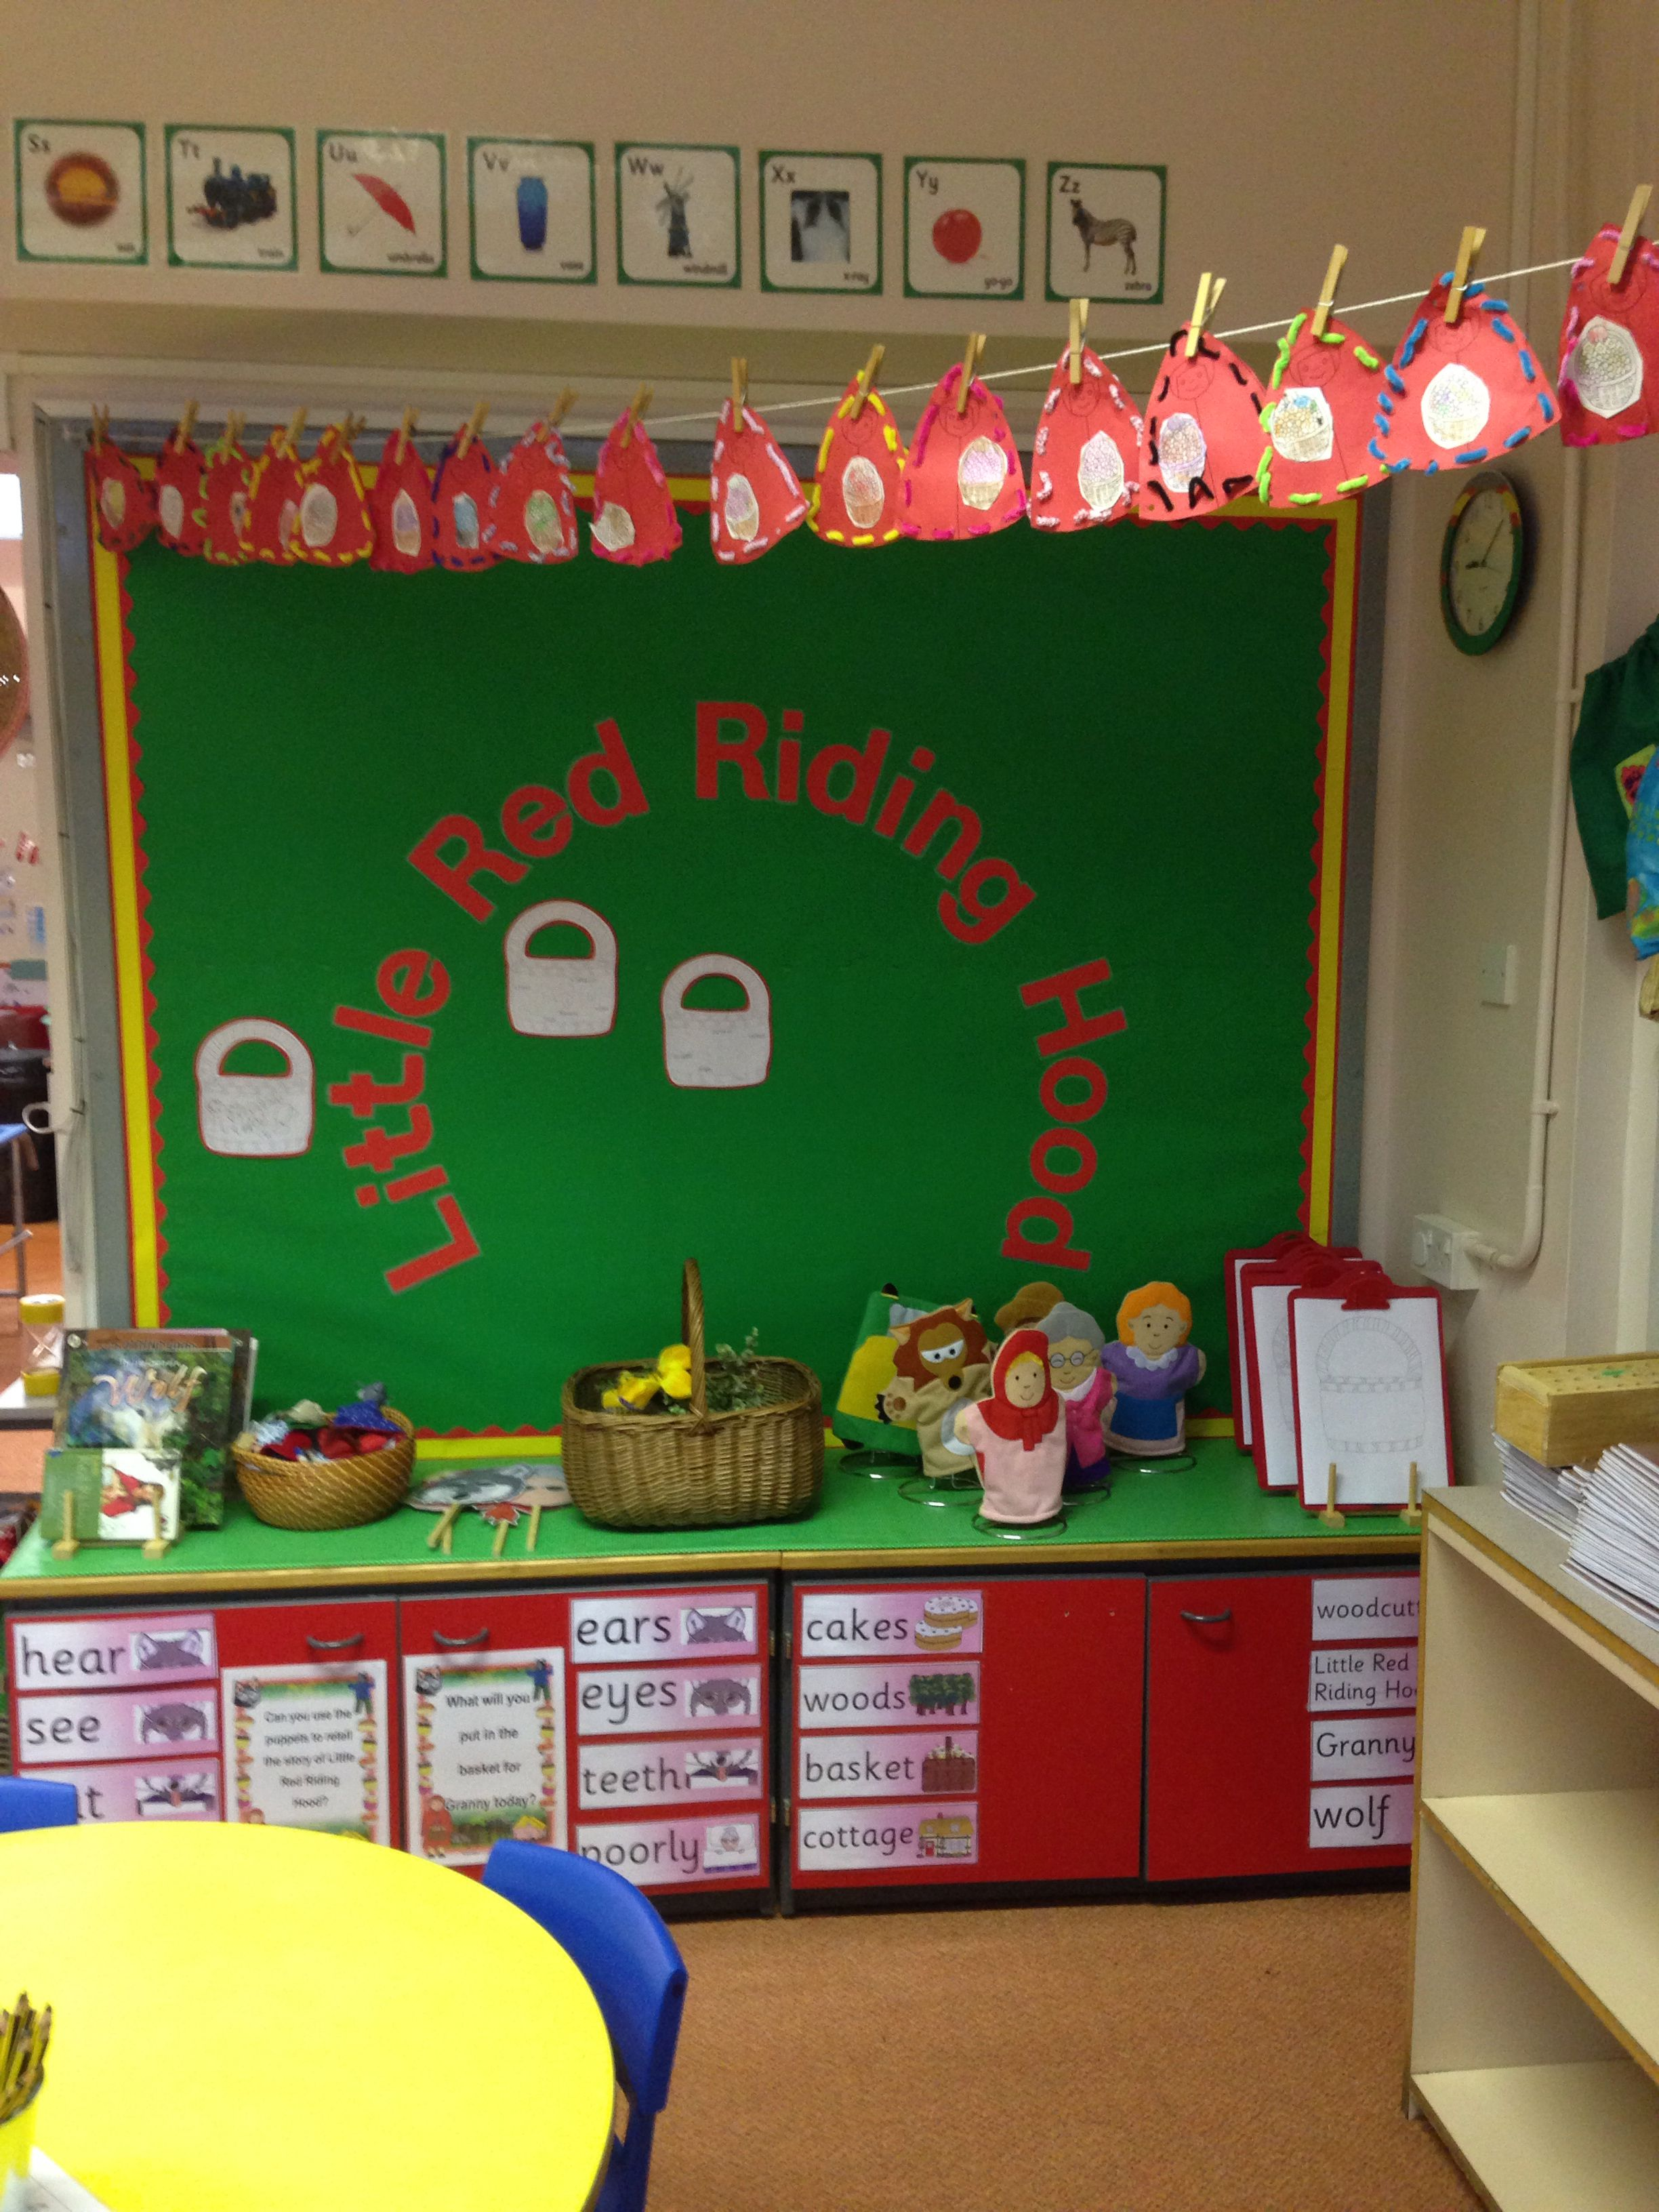 Little Red Riding Hood Display